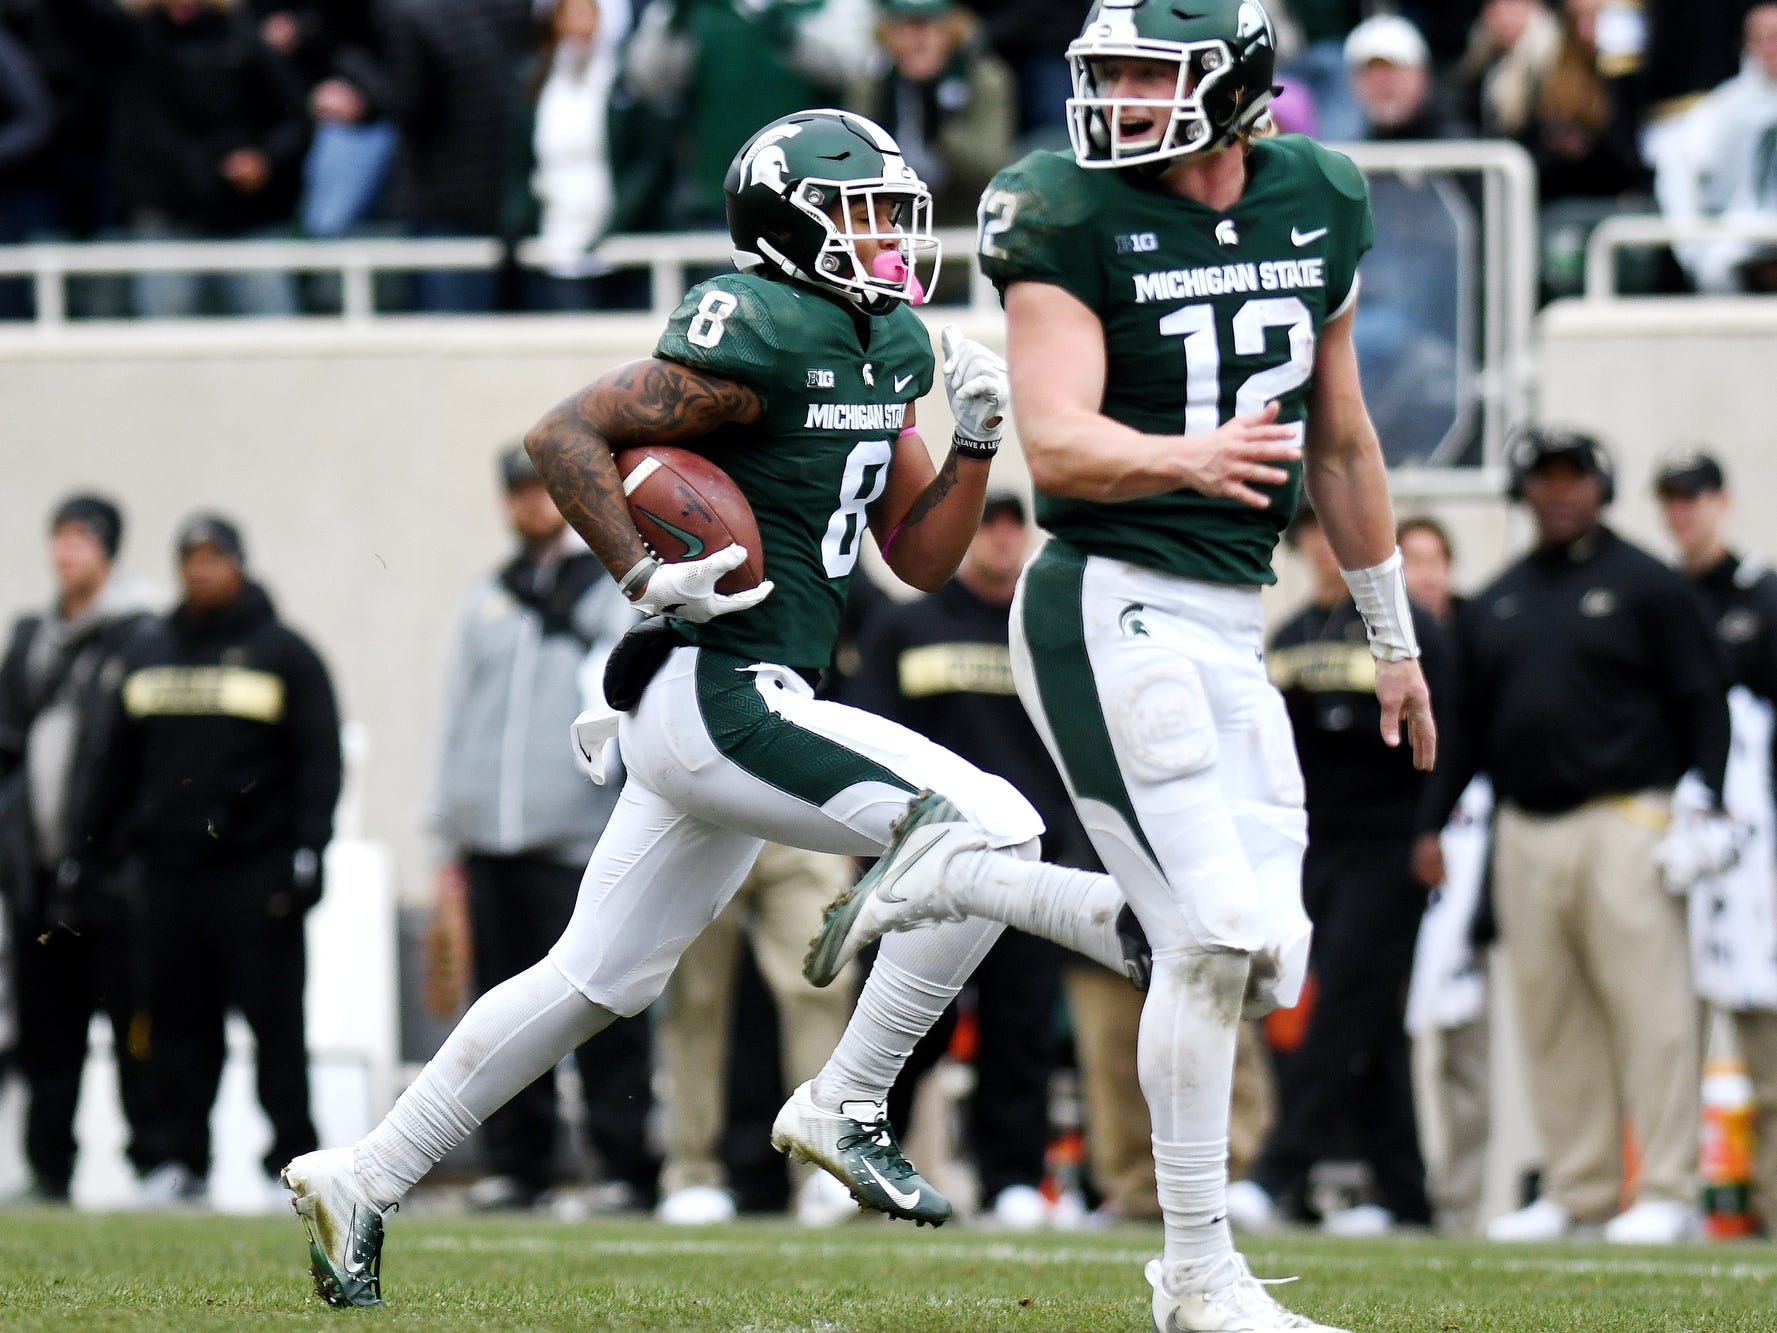 Michigan State's Jalen Nailor, left, runs for a touchdown as Rocky Lombardi, right, positions himself to help block during the fourth quarter on Saturday, Oct. 27, 2018, at Spartan Stadium in East Lansing.